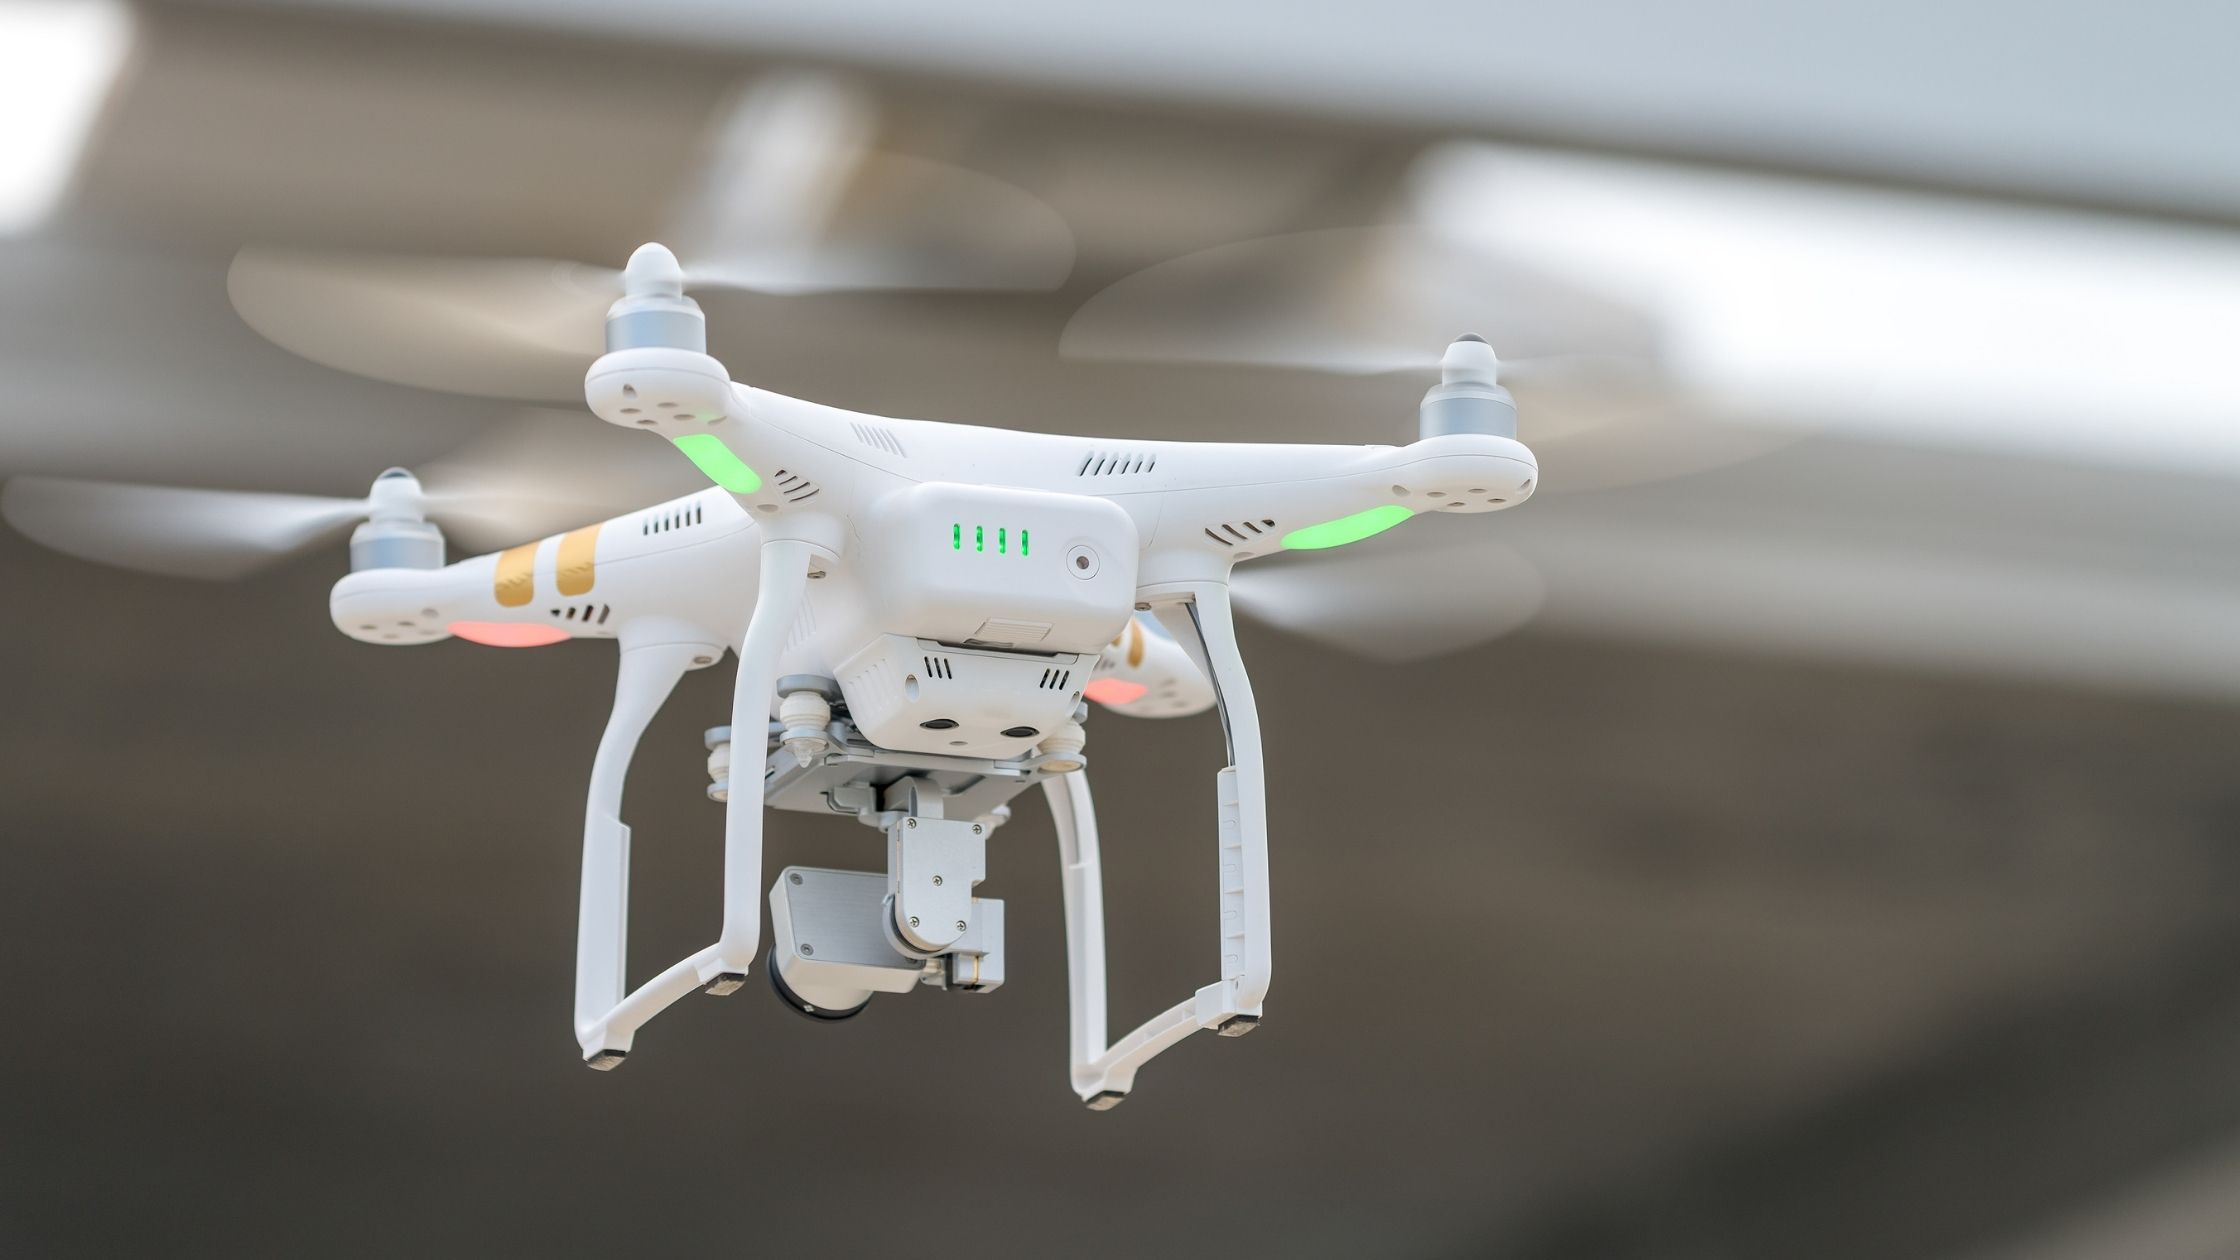 Emerging Inspection Technology - Smartphones and Drones